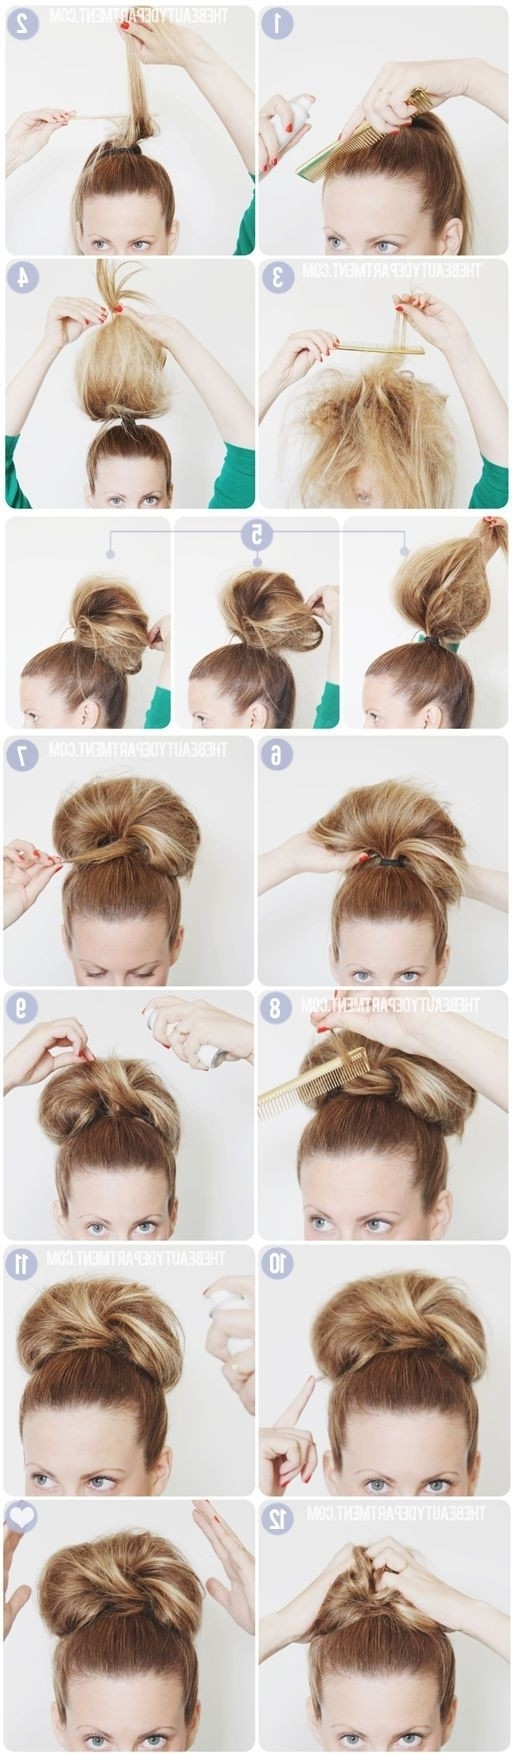 10 Super Easy Updo Hairstyles Tutorials – Popular Haircuts With High Updo Hairstyles For Medium Hair (View 11 of 15)